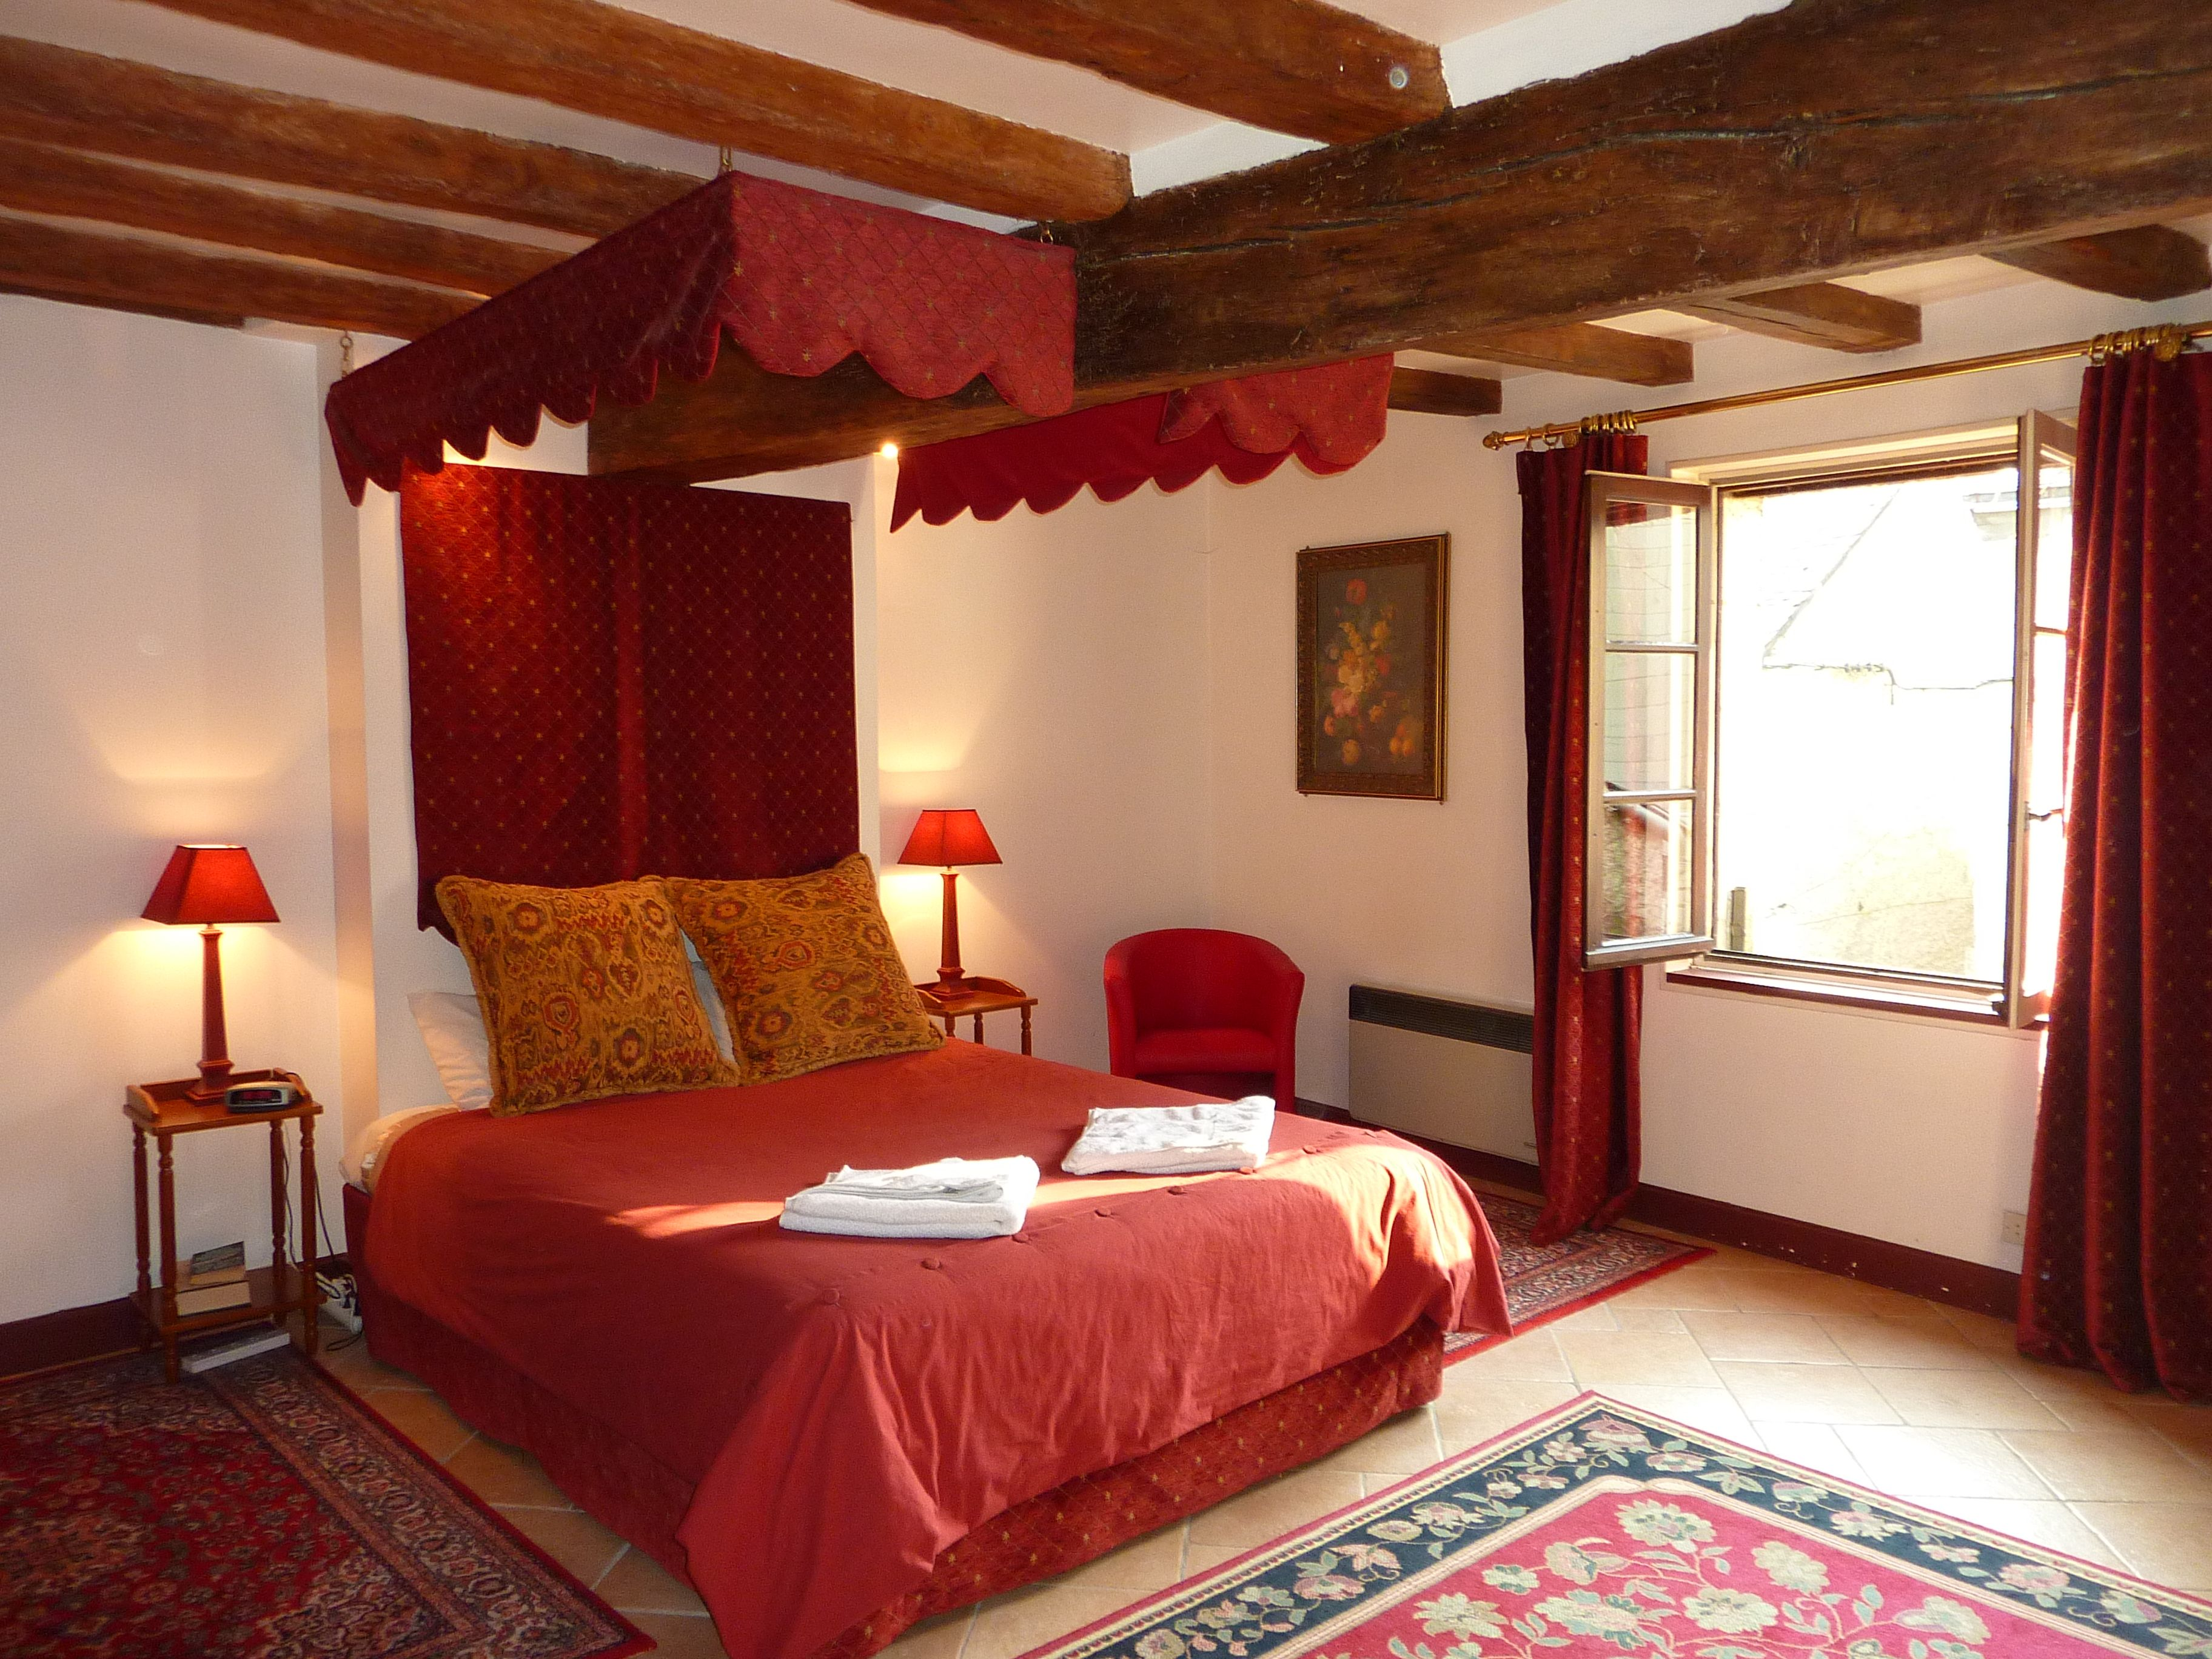 Comfortable, clean and spacious beds are a must when you travel. French Cottages knows how important this is and provides the very best night's rest you will experience in your ramblings about France